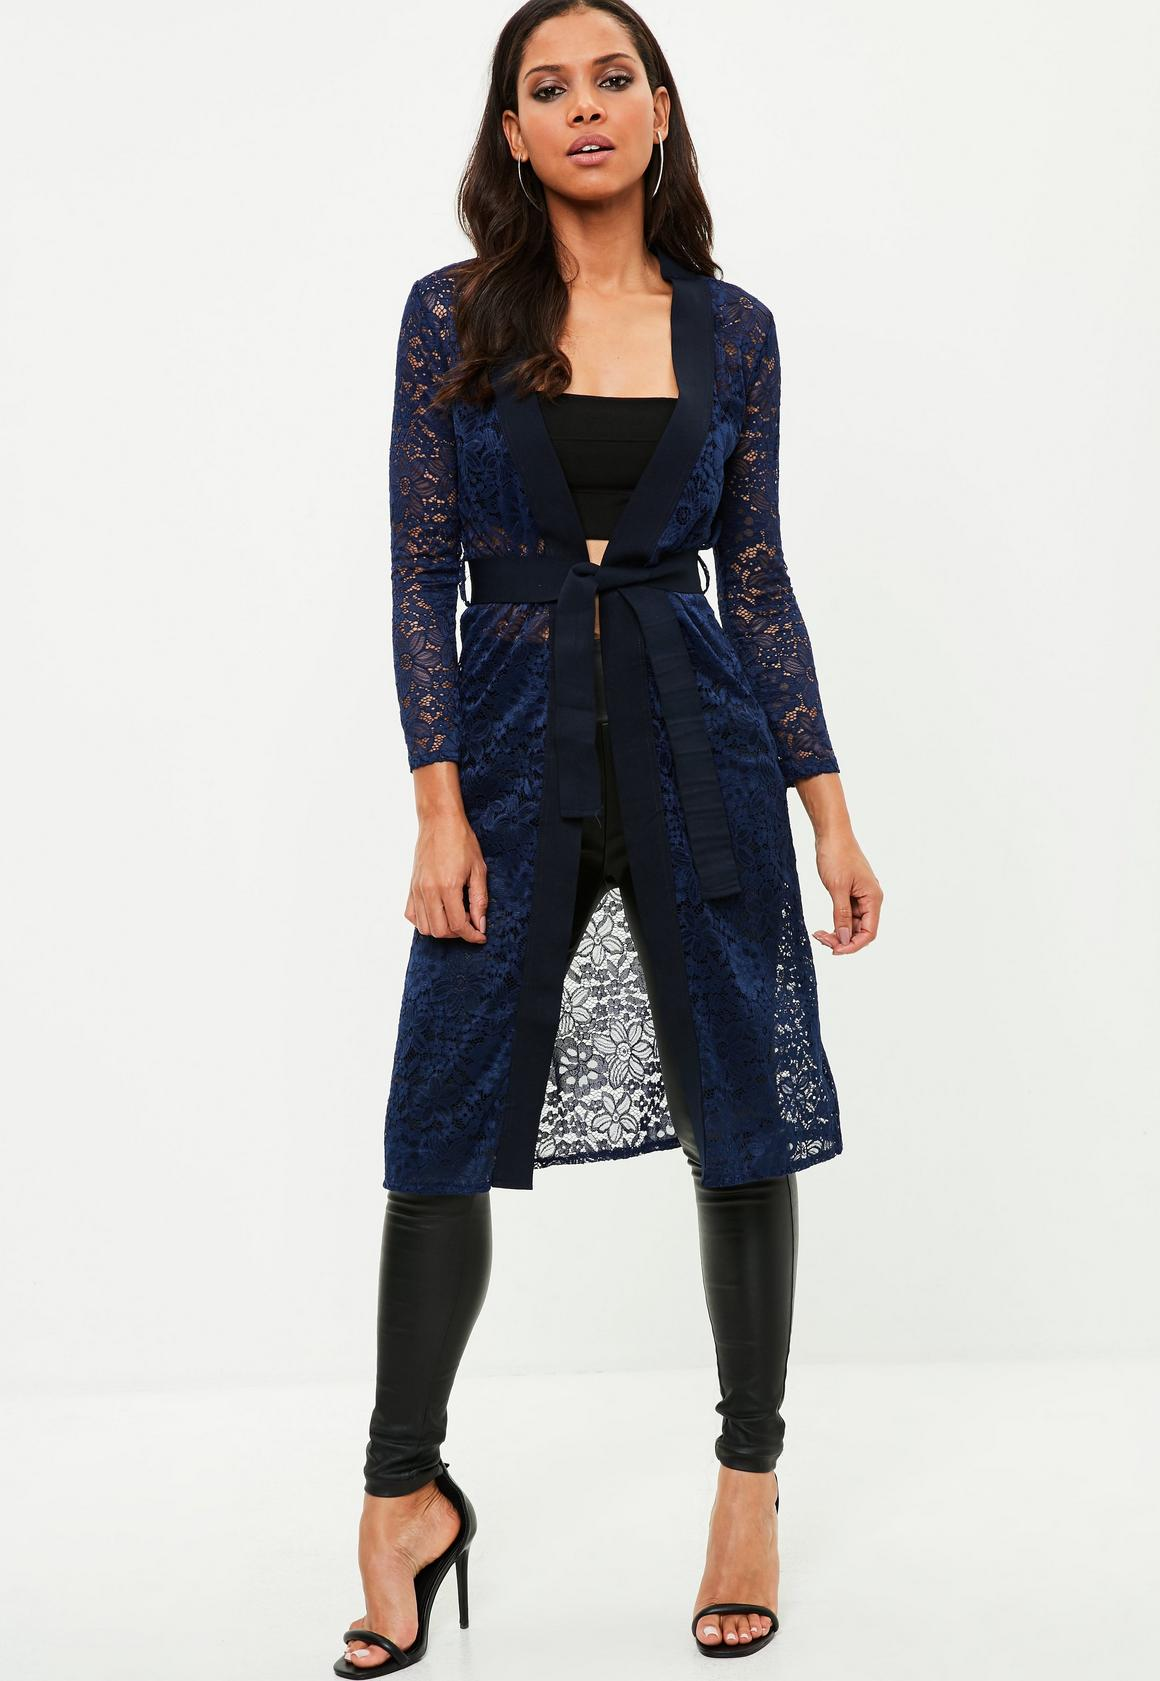 Navy Lace Longline Cardigan   Missguided